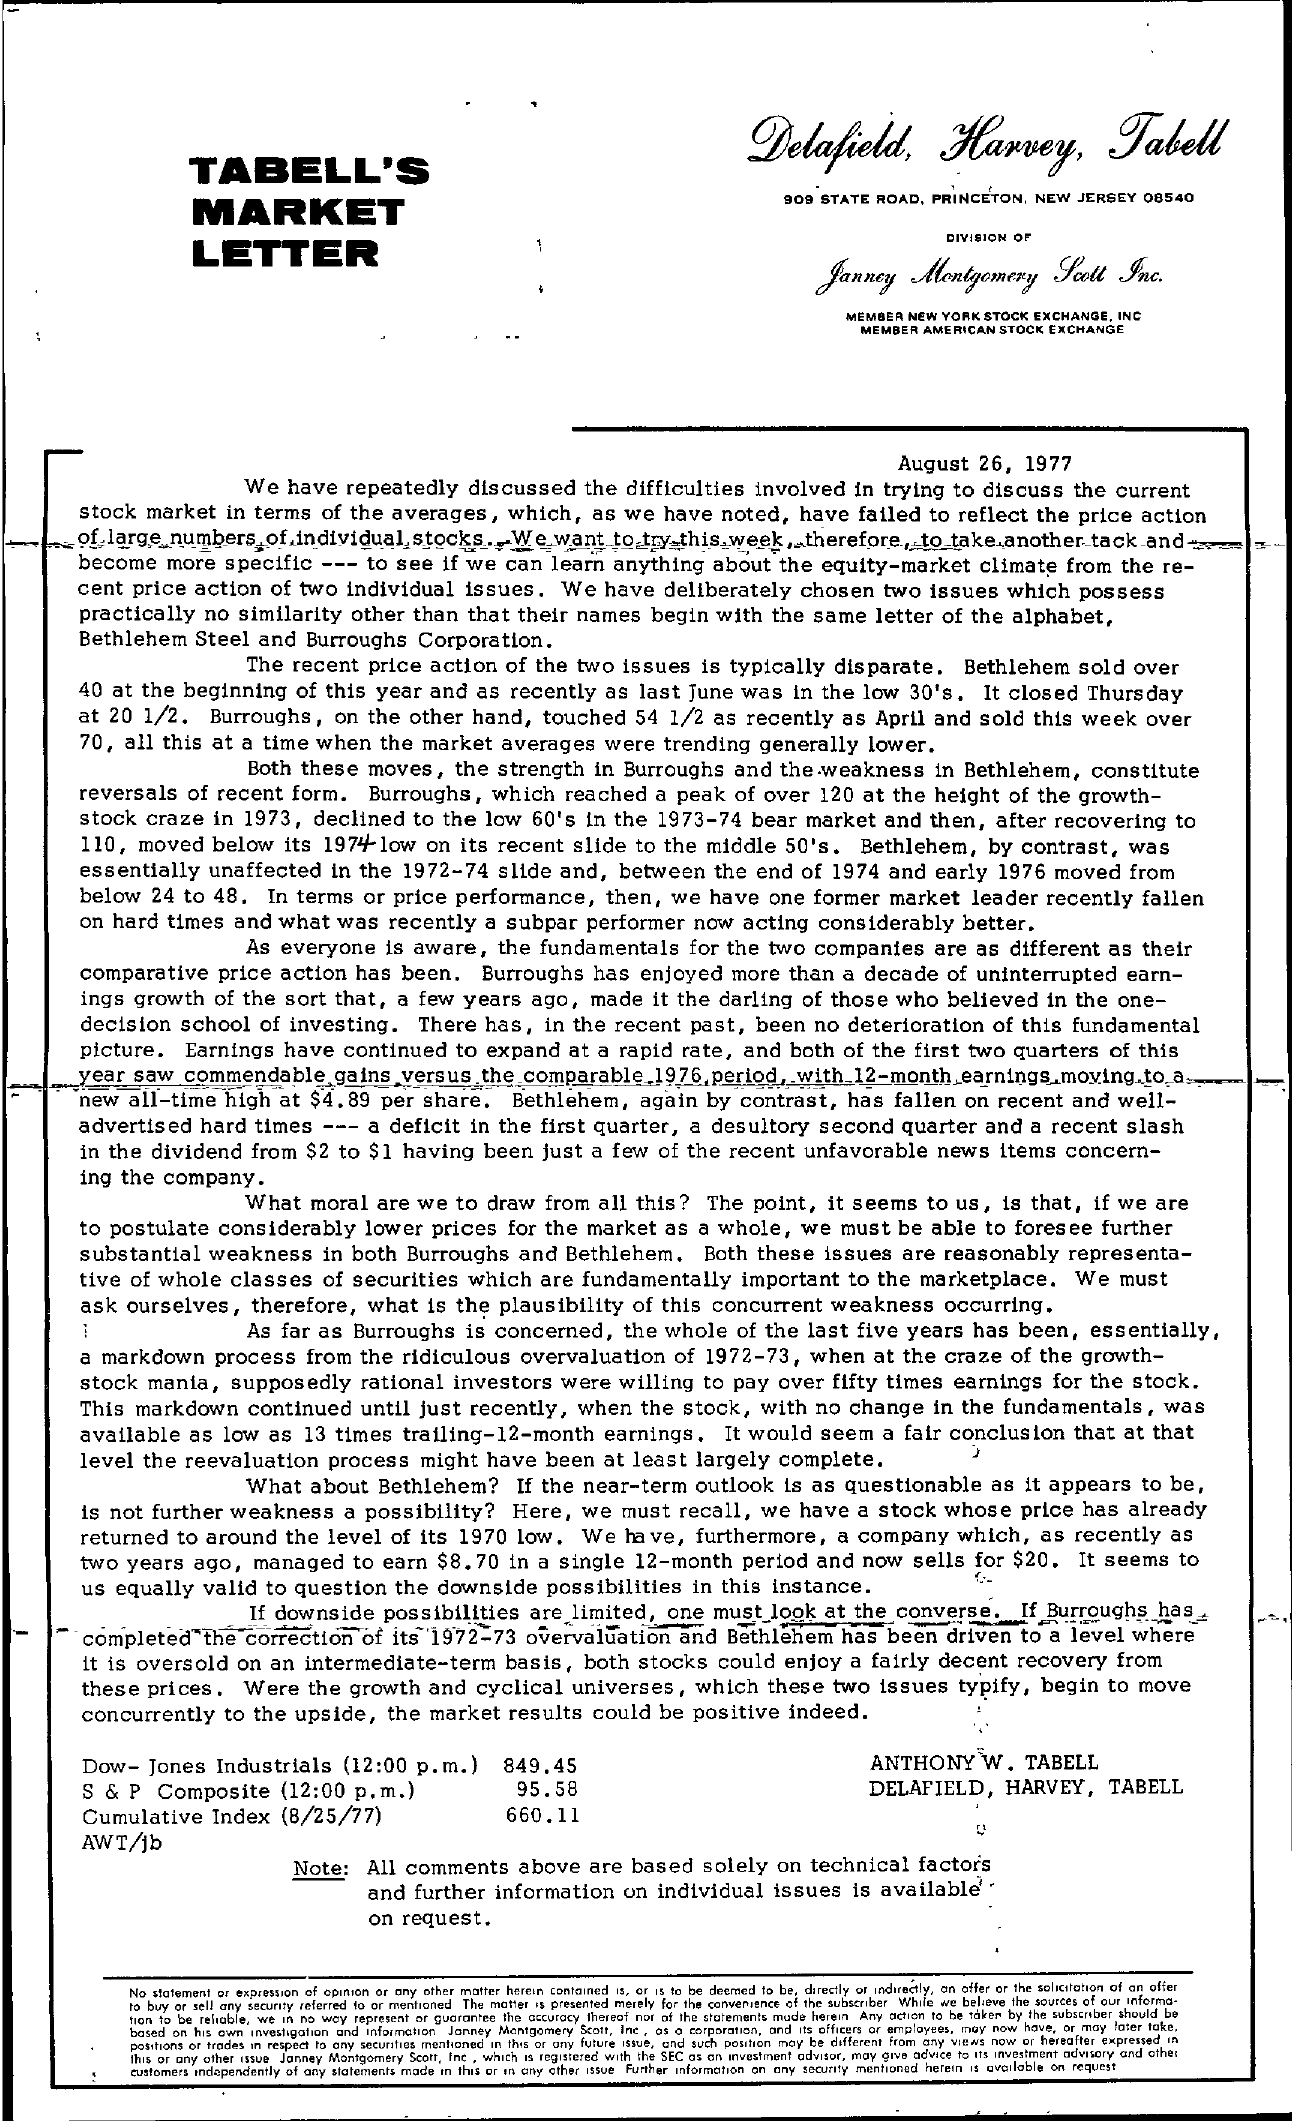 Tabell's Market Letter - August 26, 1977